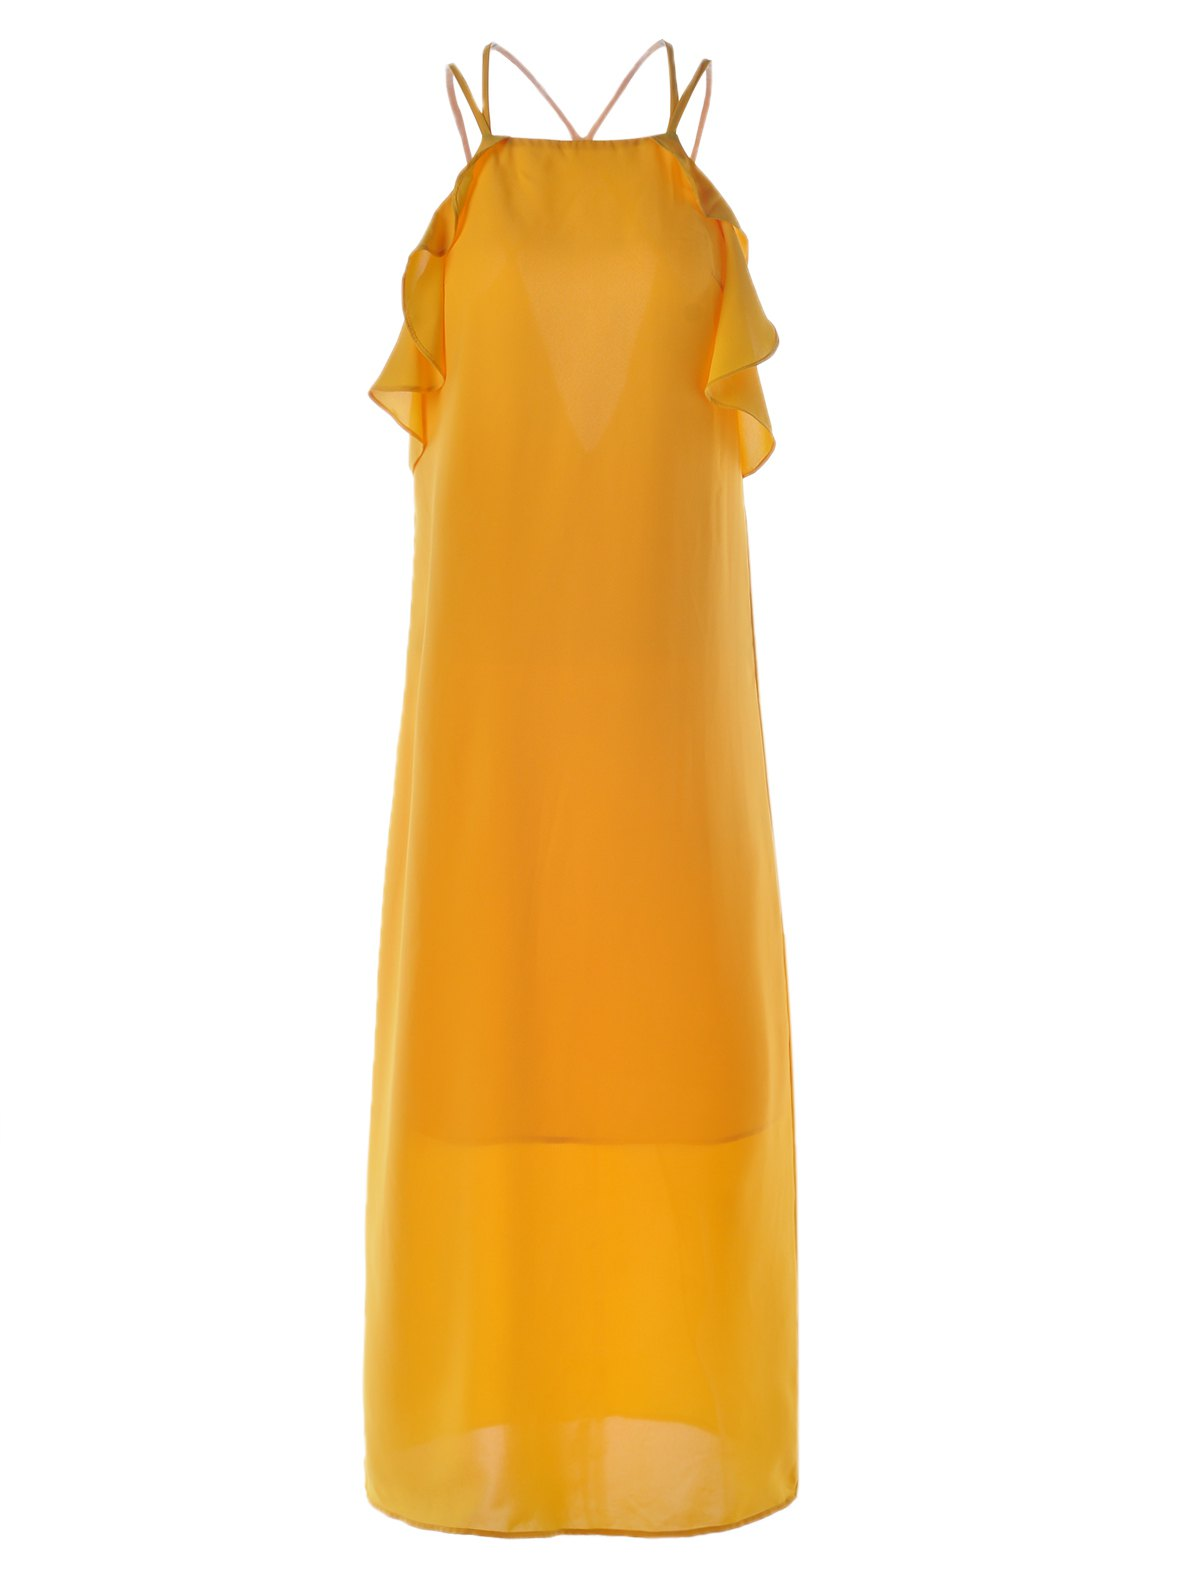 Best Women's Stylish Cut Out Spaghetti Strap Pure Color Dress